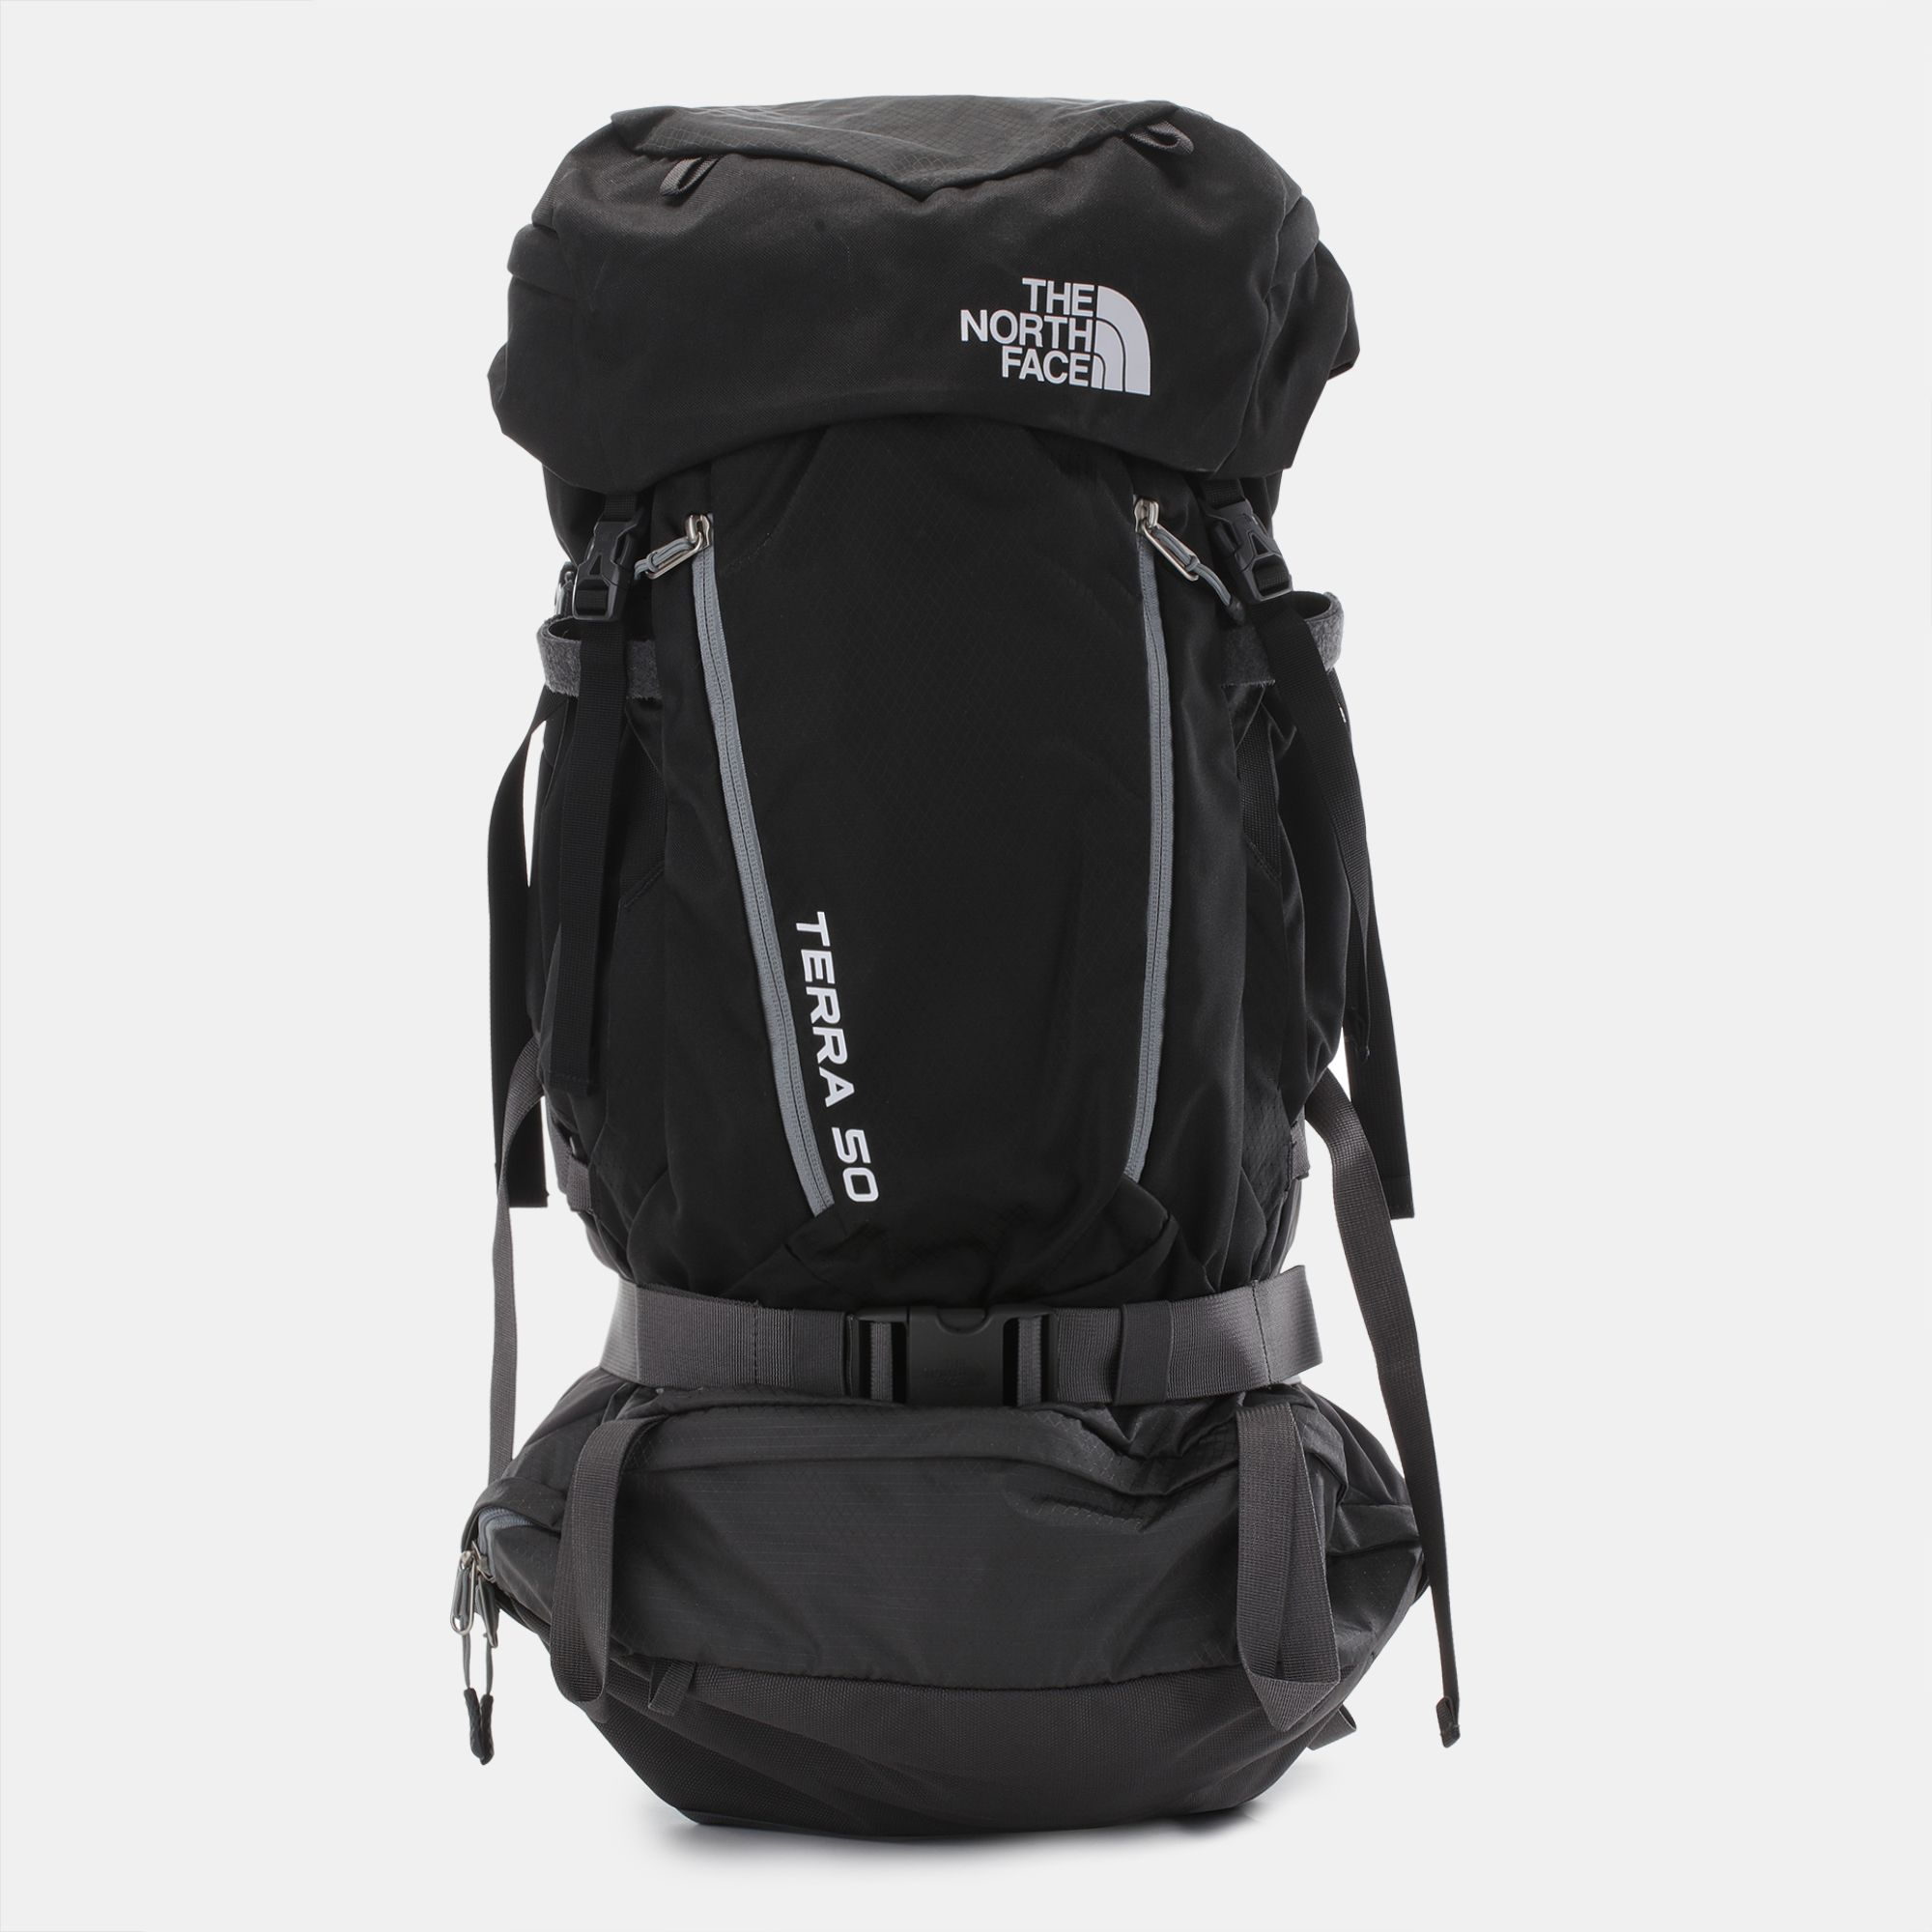 2106e3542f Shop Green The North Face Terra 50 Backpack for Unisex by The North ...